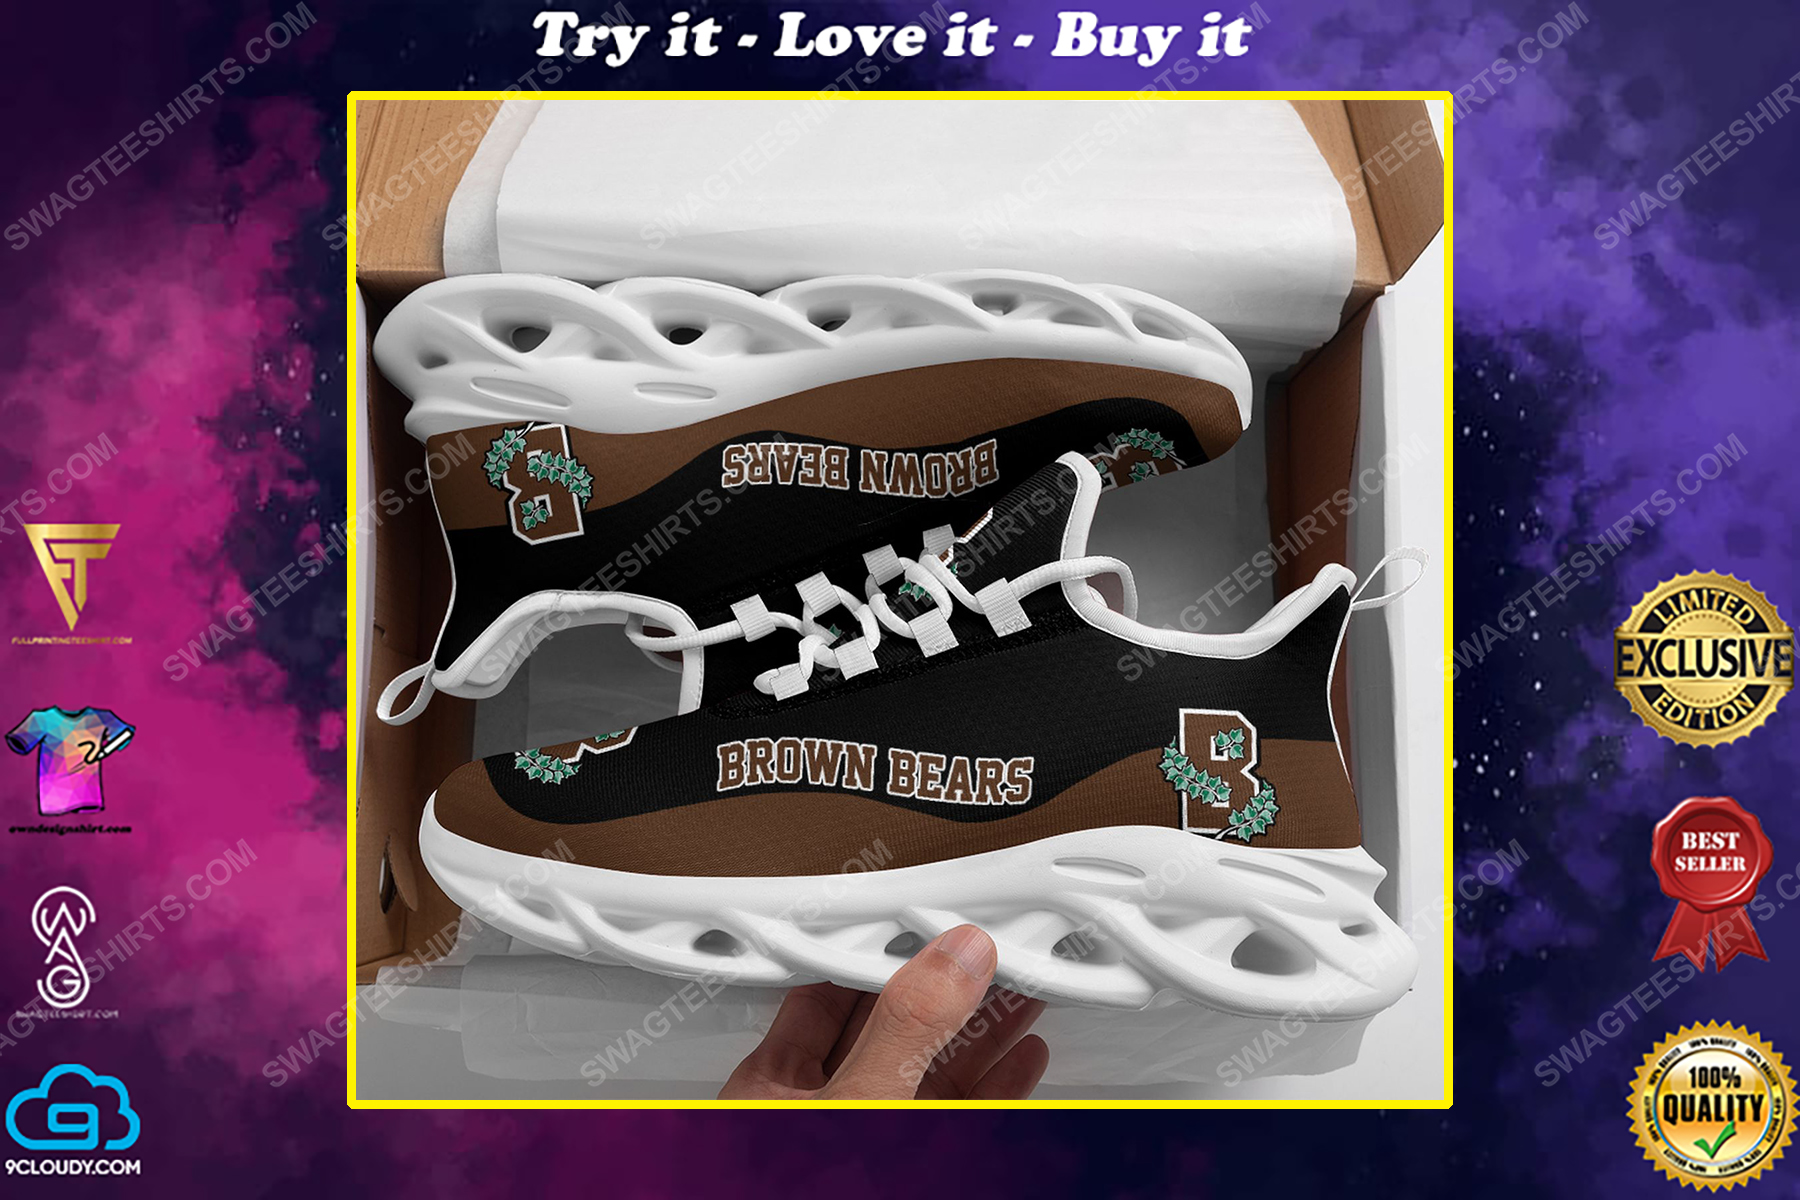 The brown bears football team max soul shoes